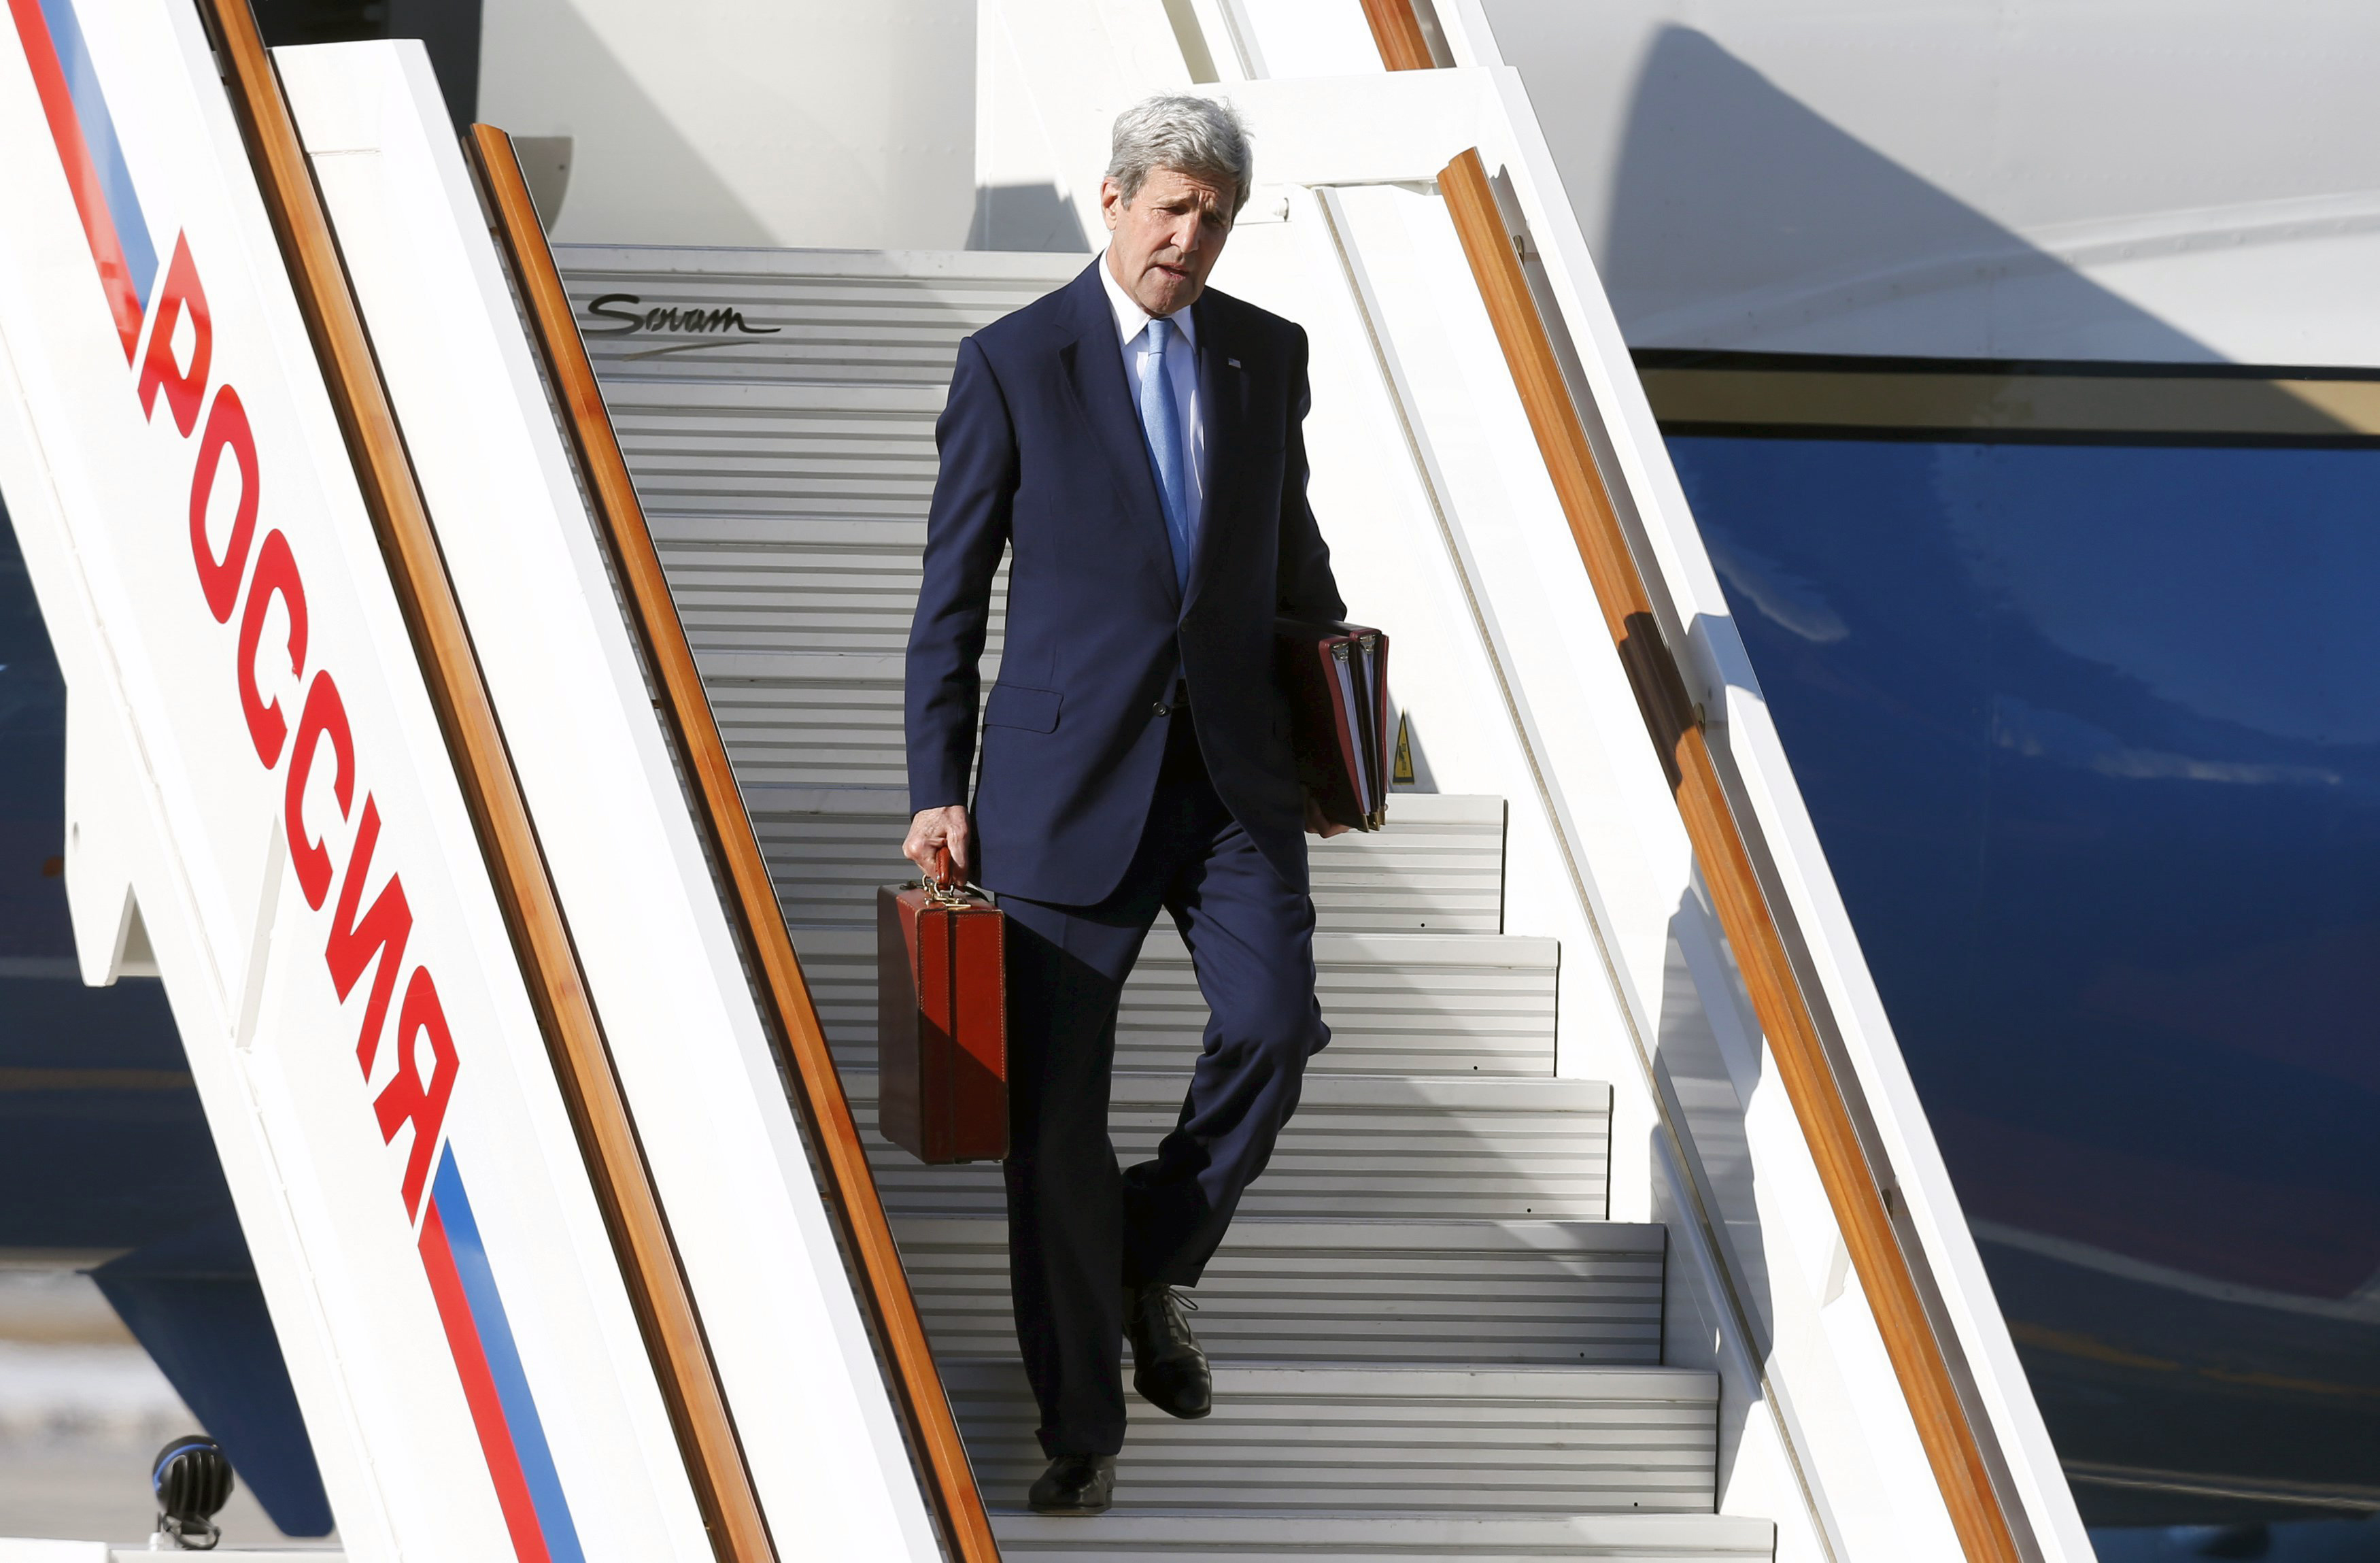 U.S. Secretary of State John Kerry carries his briefcase as he arrives at Moscow's Vnukovo airport in Russia, on March 23, 2016.